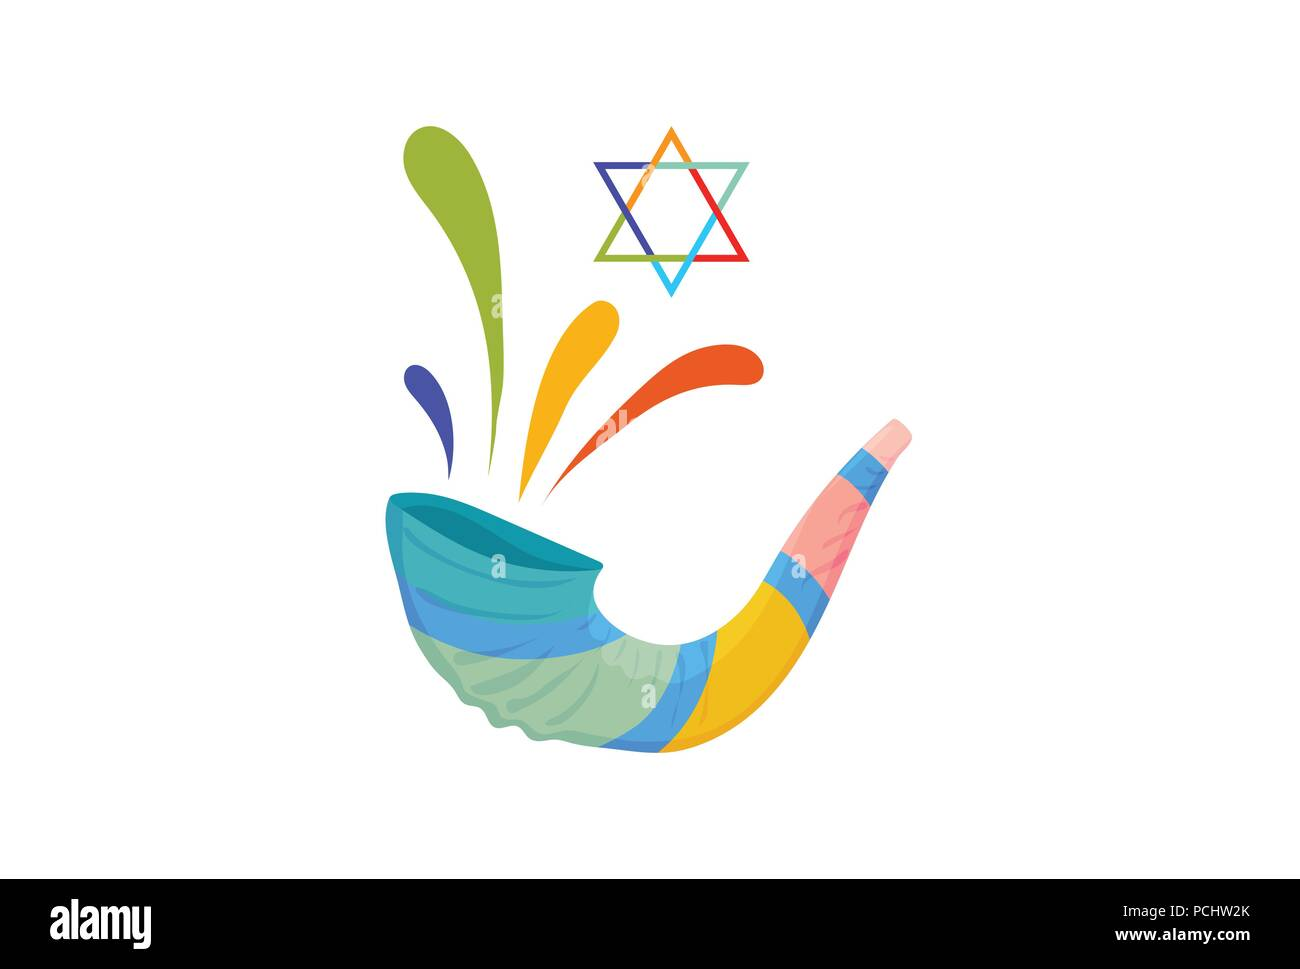 Vector Illustration For Yom Kippur And Rosh Hashanah Shofar Or Yom